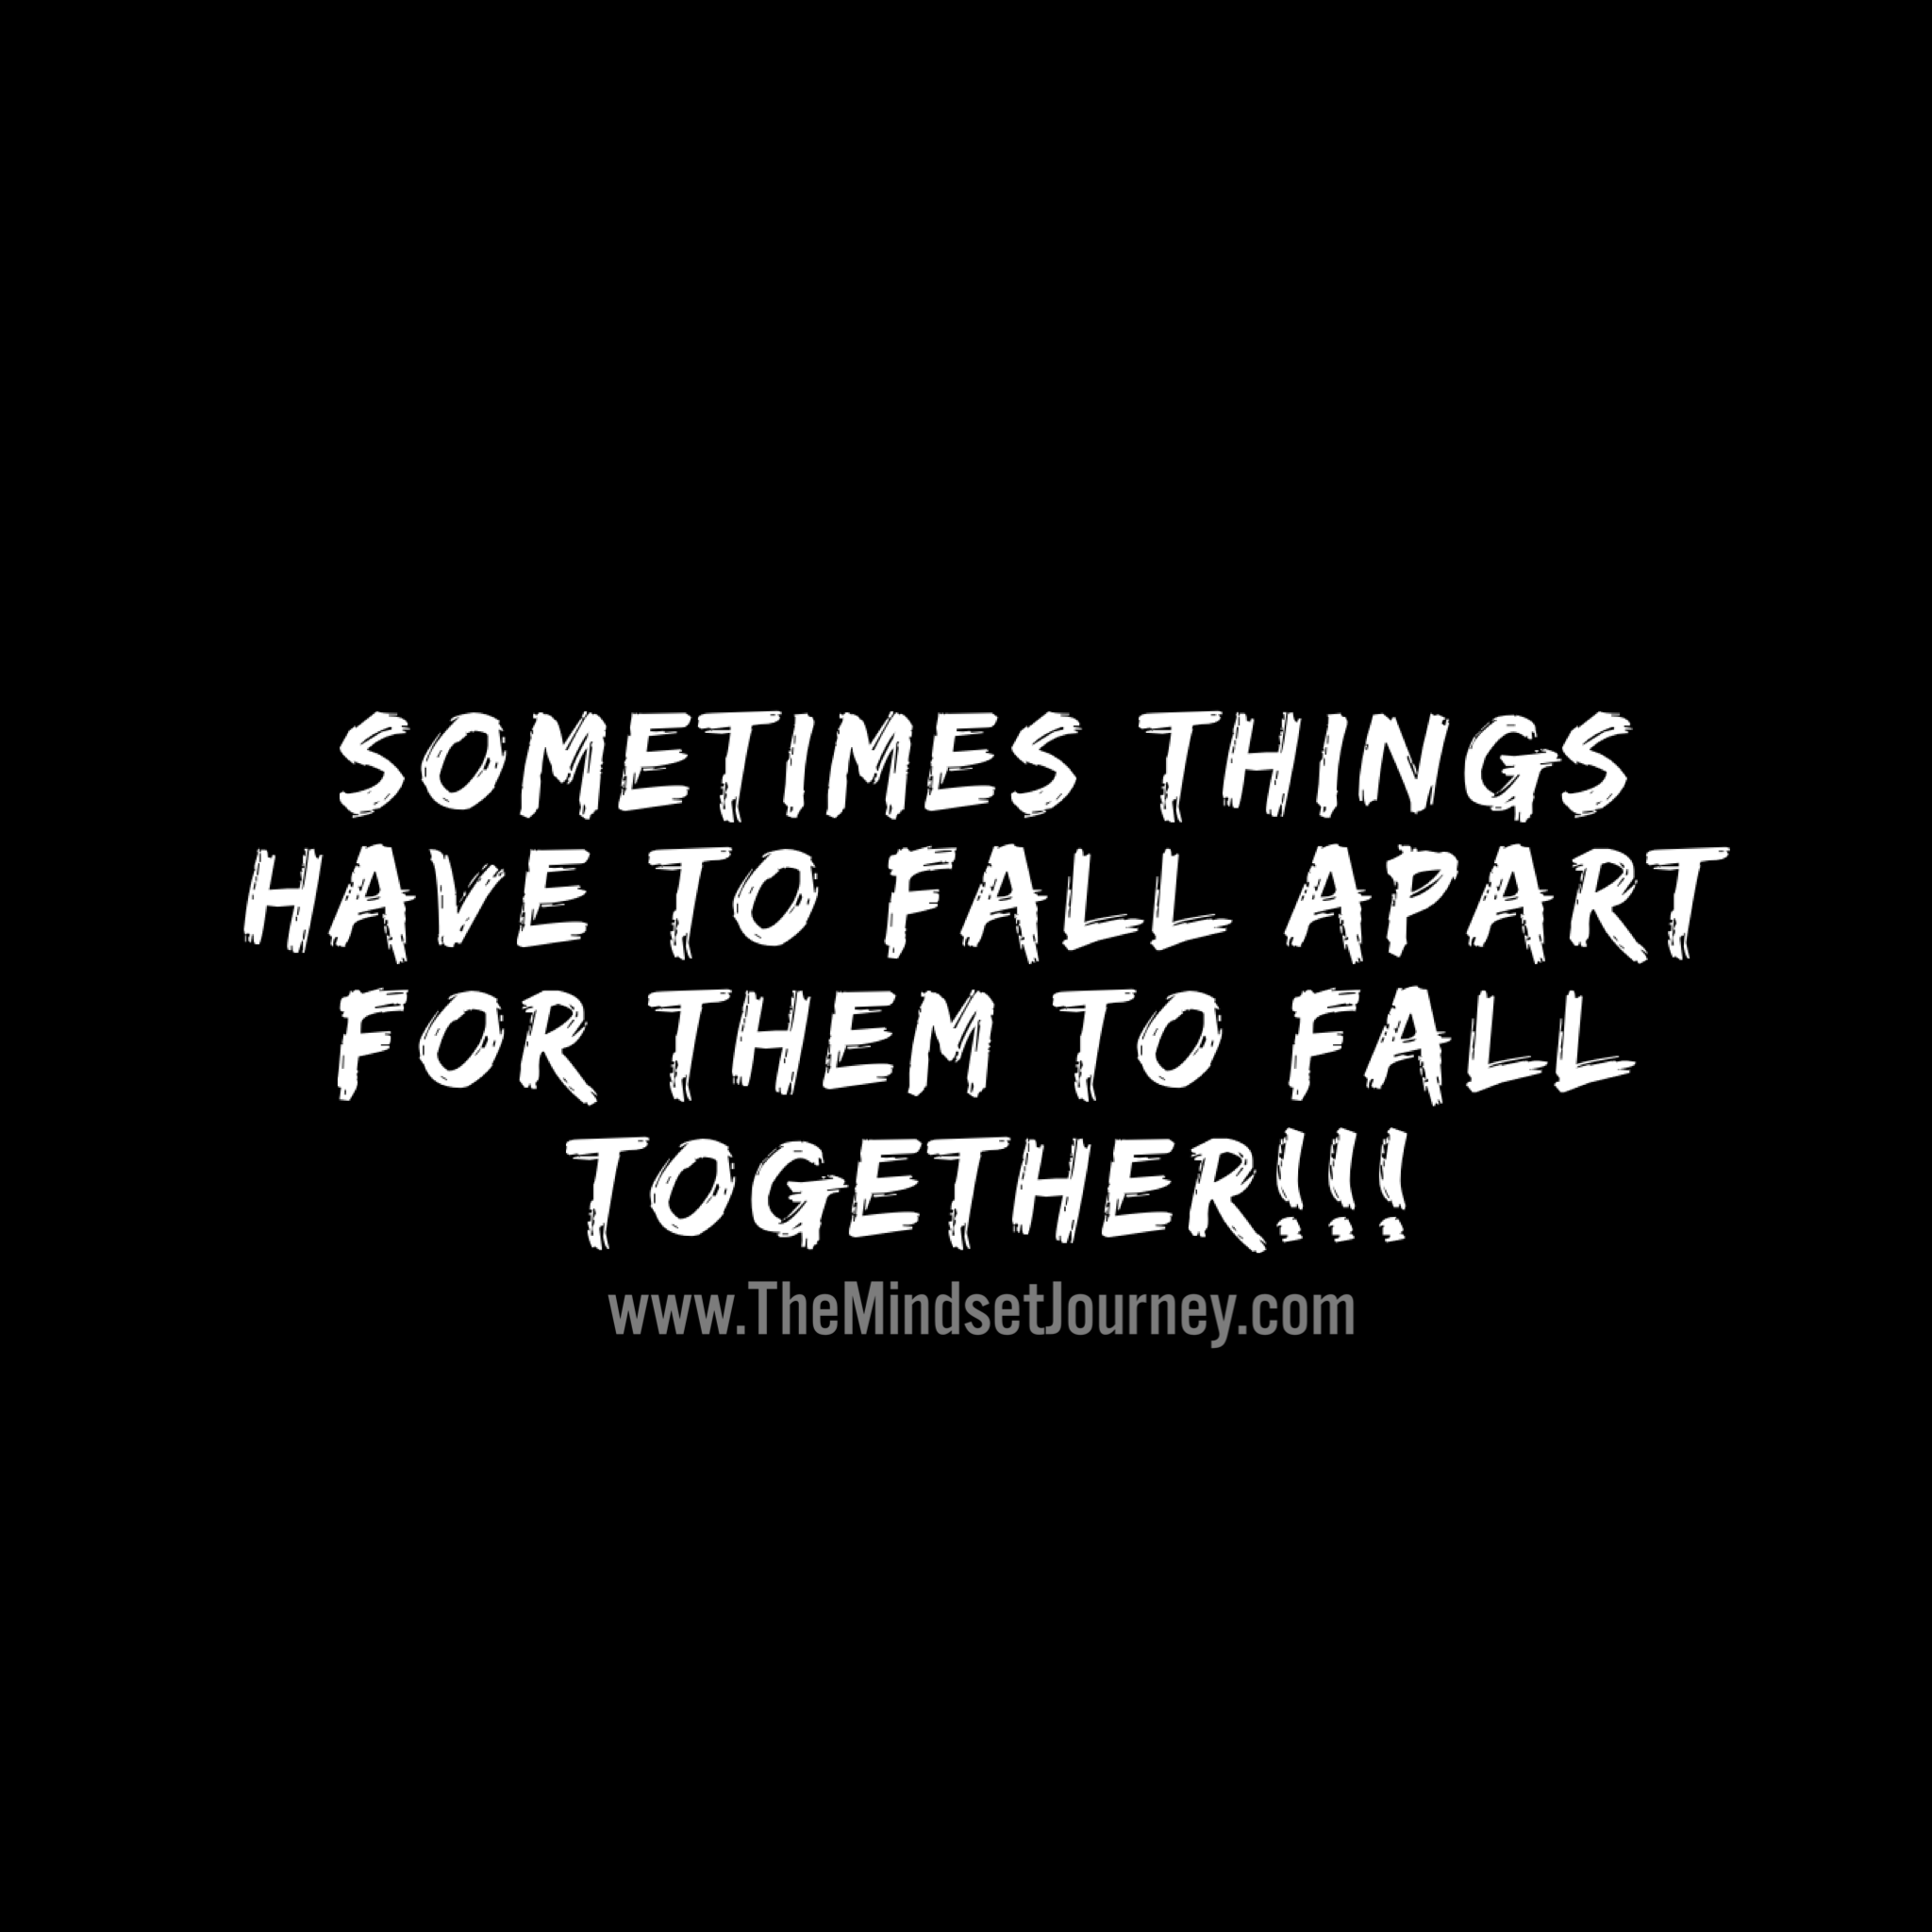 Sometimes Things Have To Fall Apart Quote: Sometimes Things Need To Fall Apart For Them To Fall